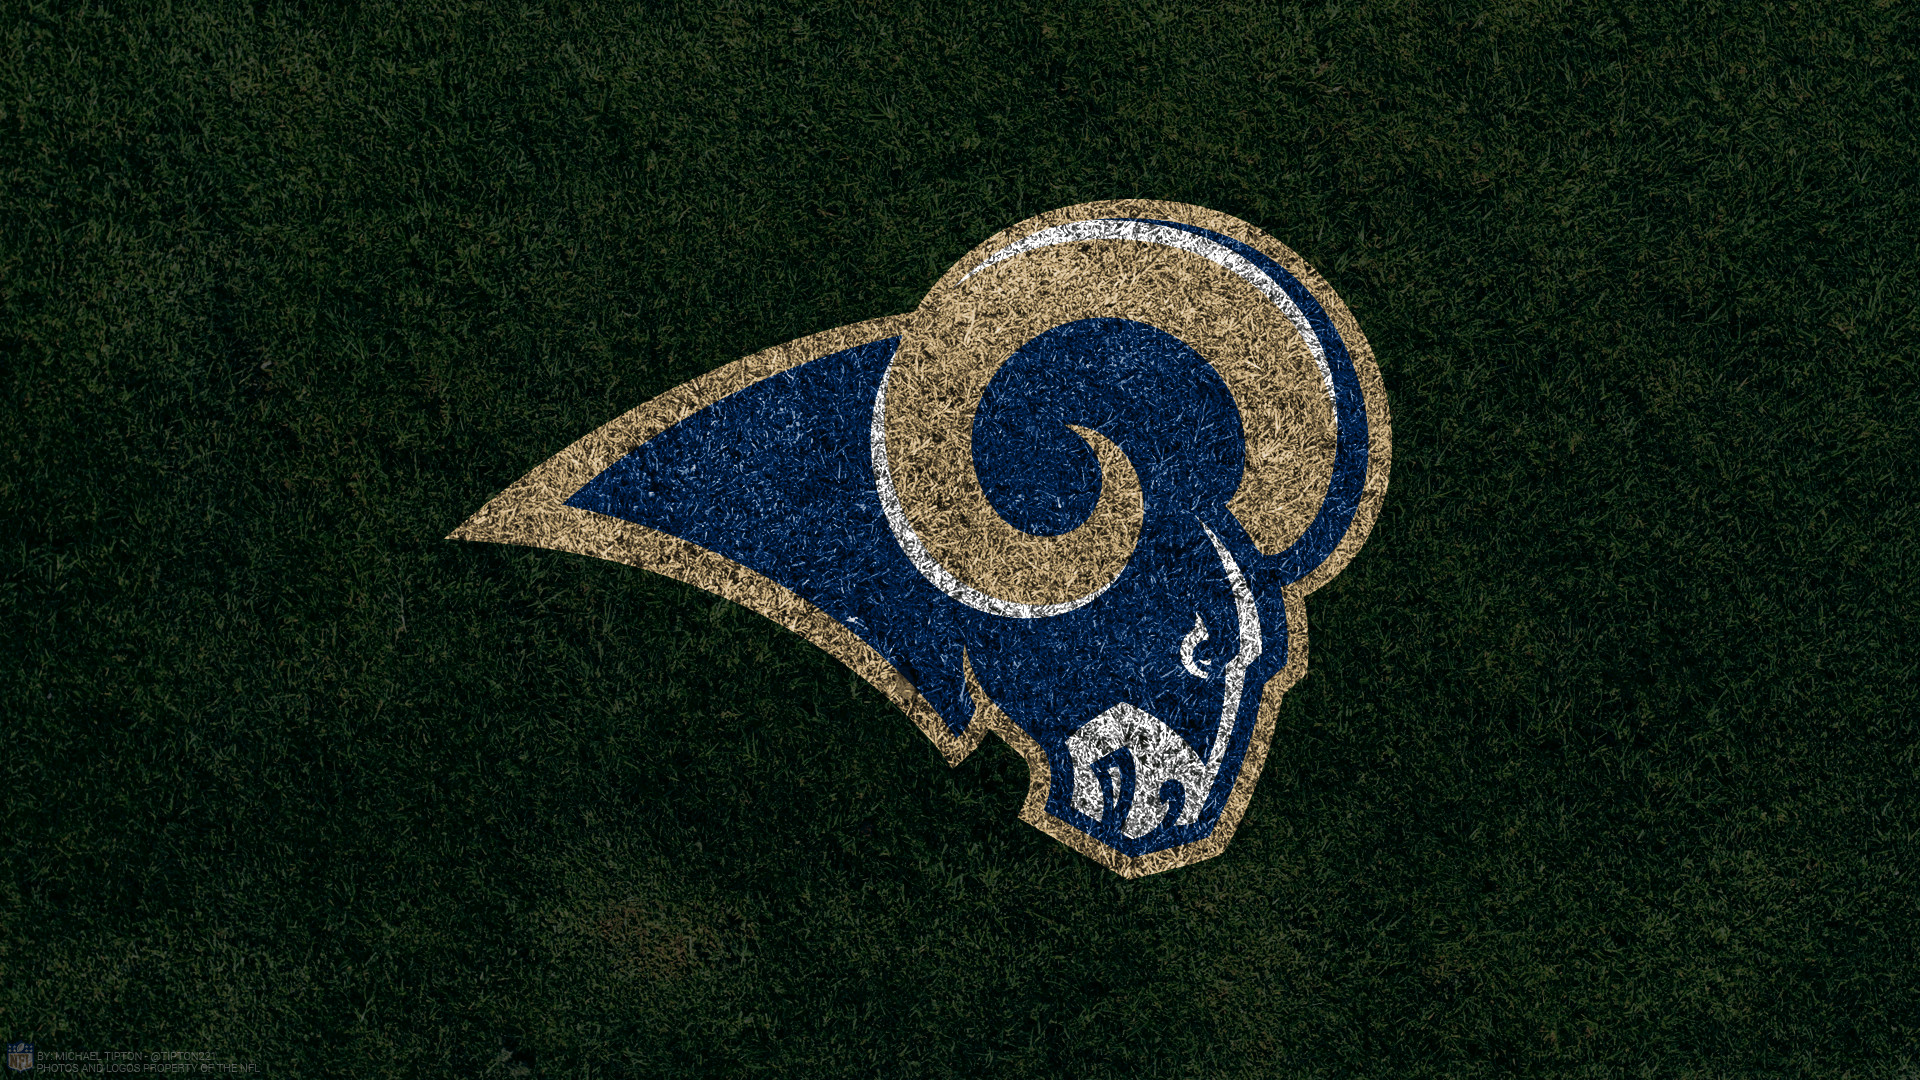 1920x1080 2017 Los Angeles Rams Wallpapers - PC |iPhone| Android